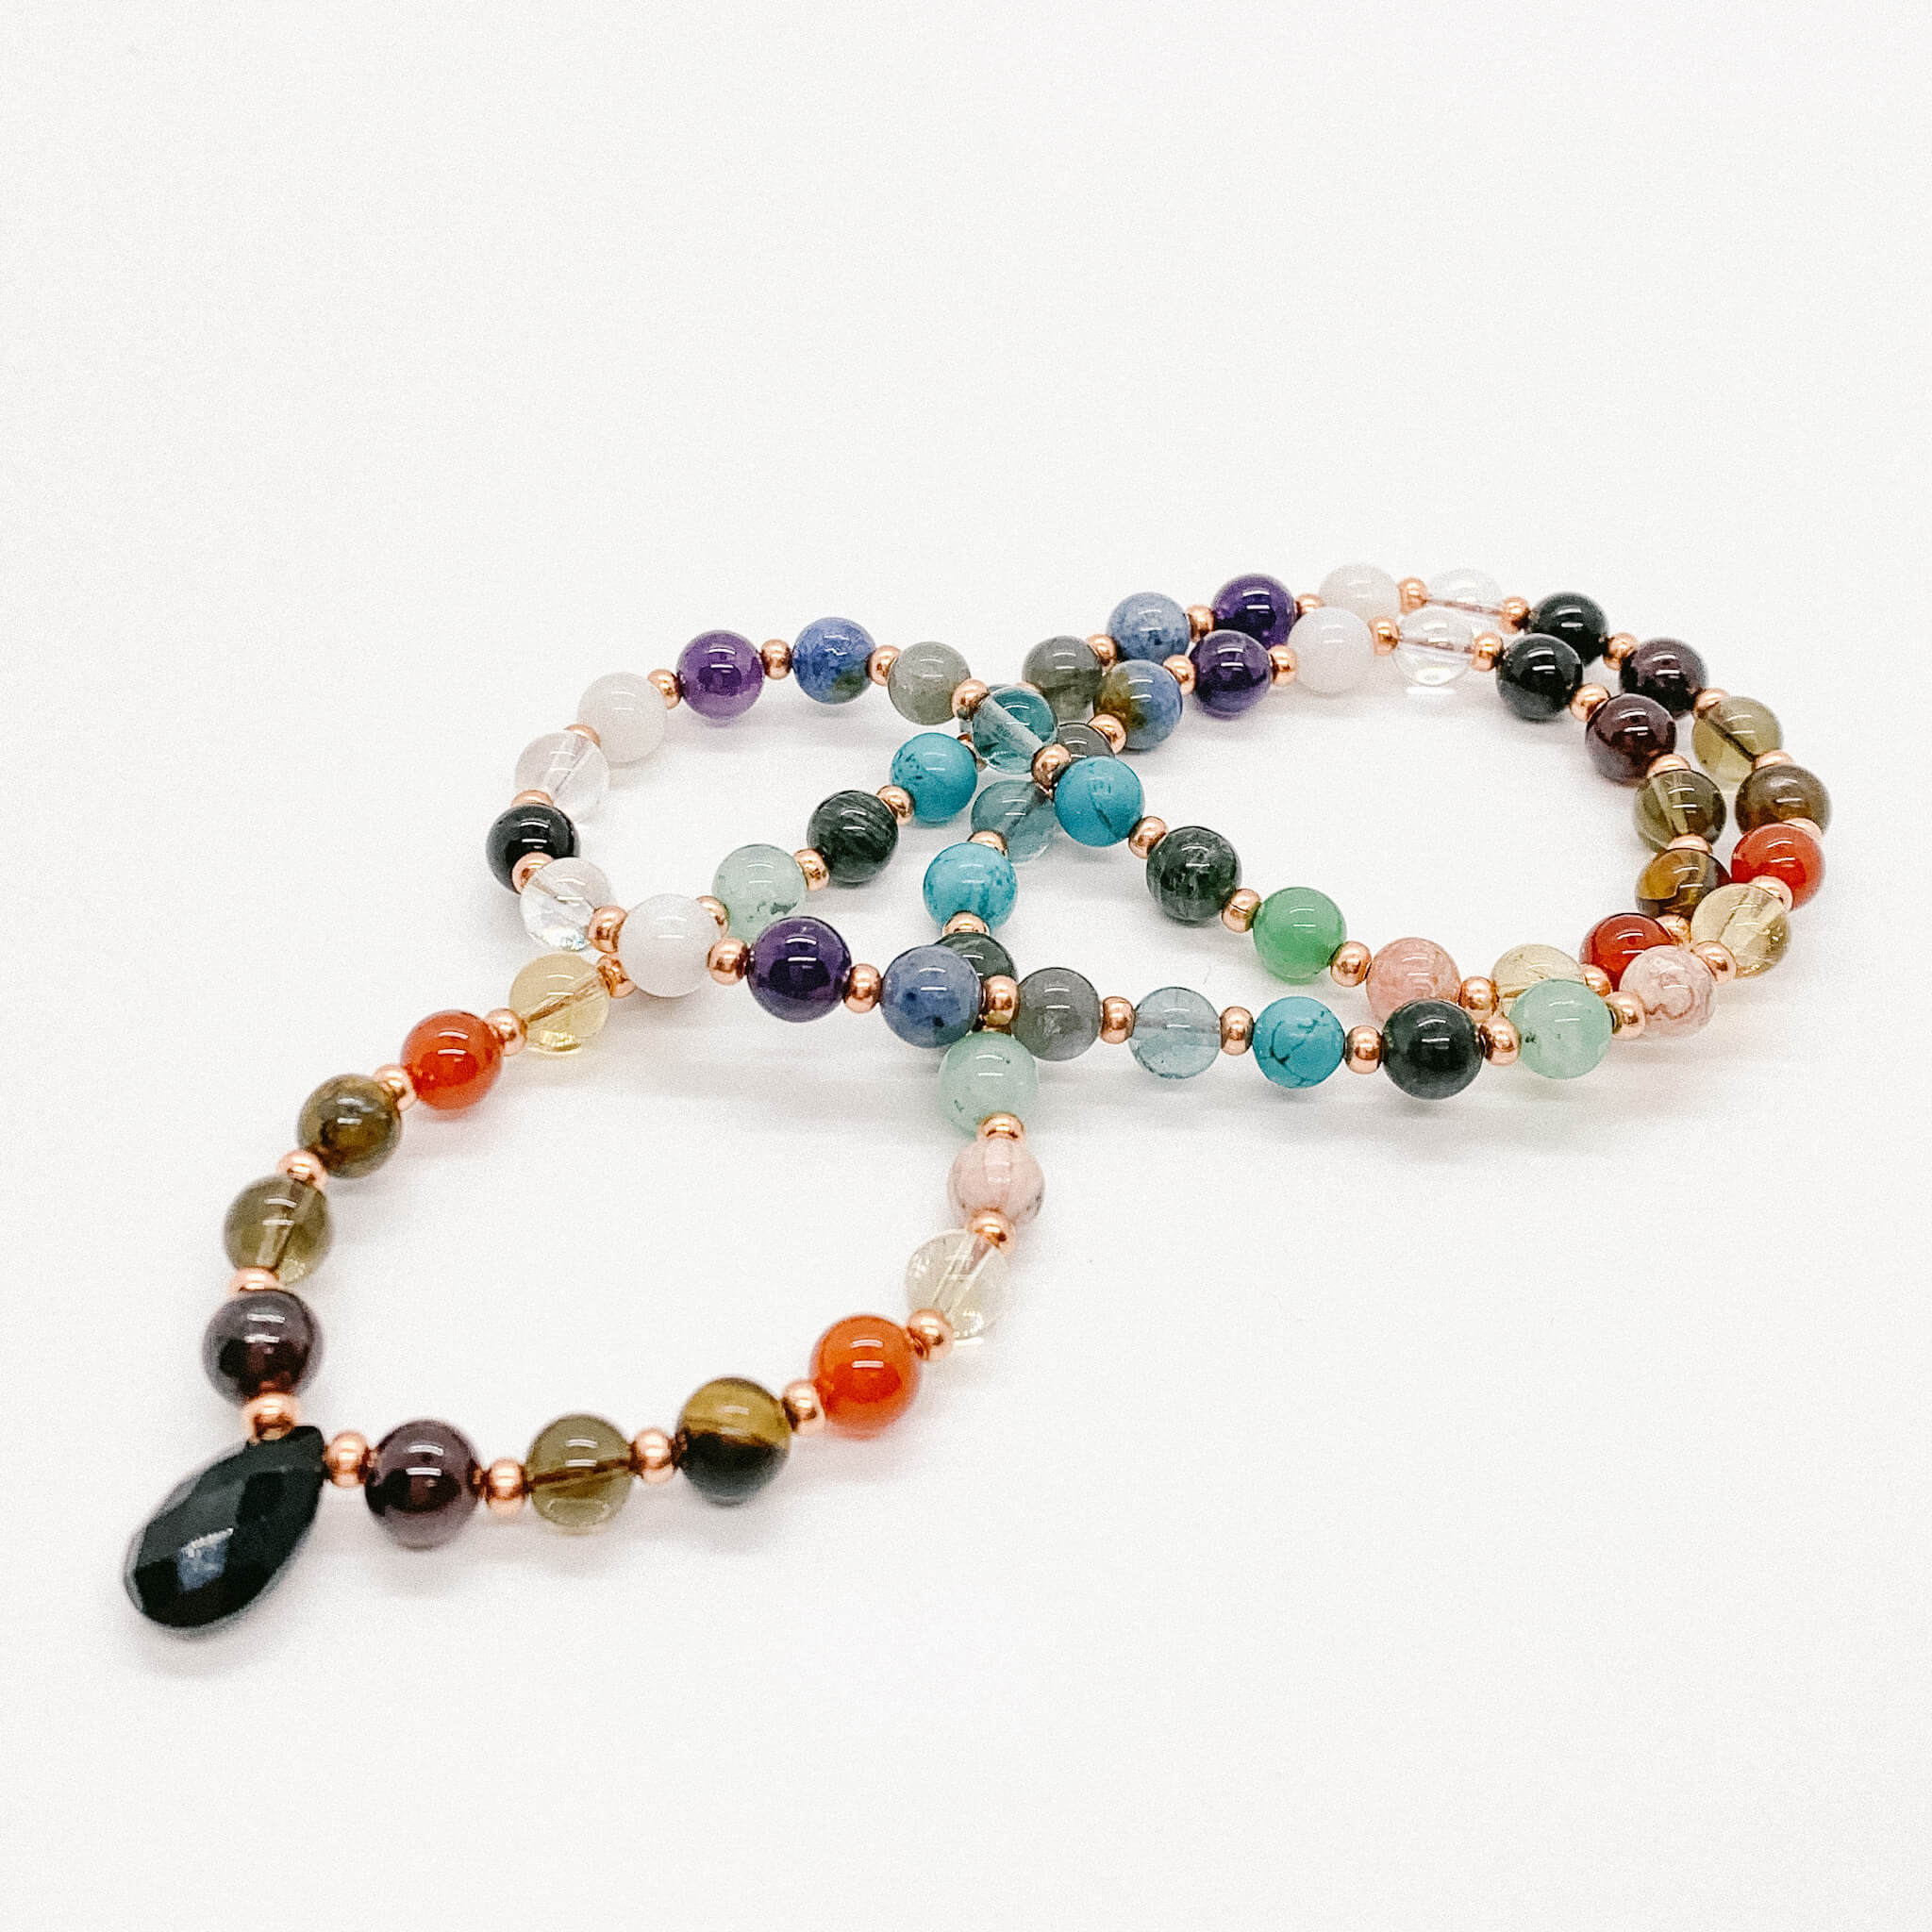 Full Collection Gemstone Heart Strands